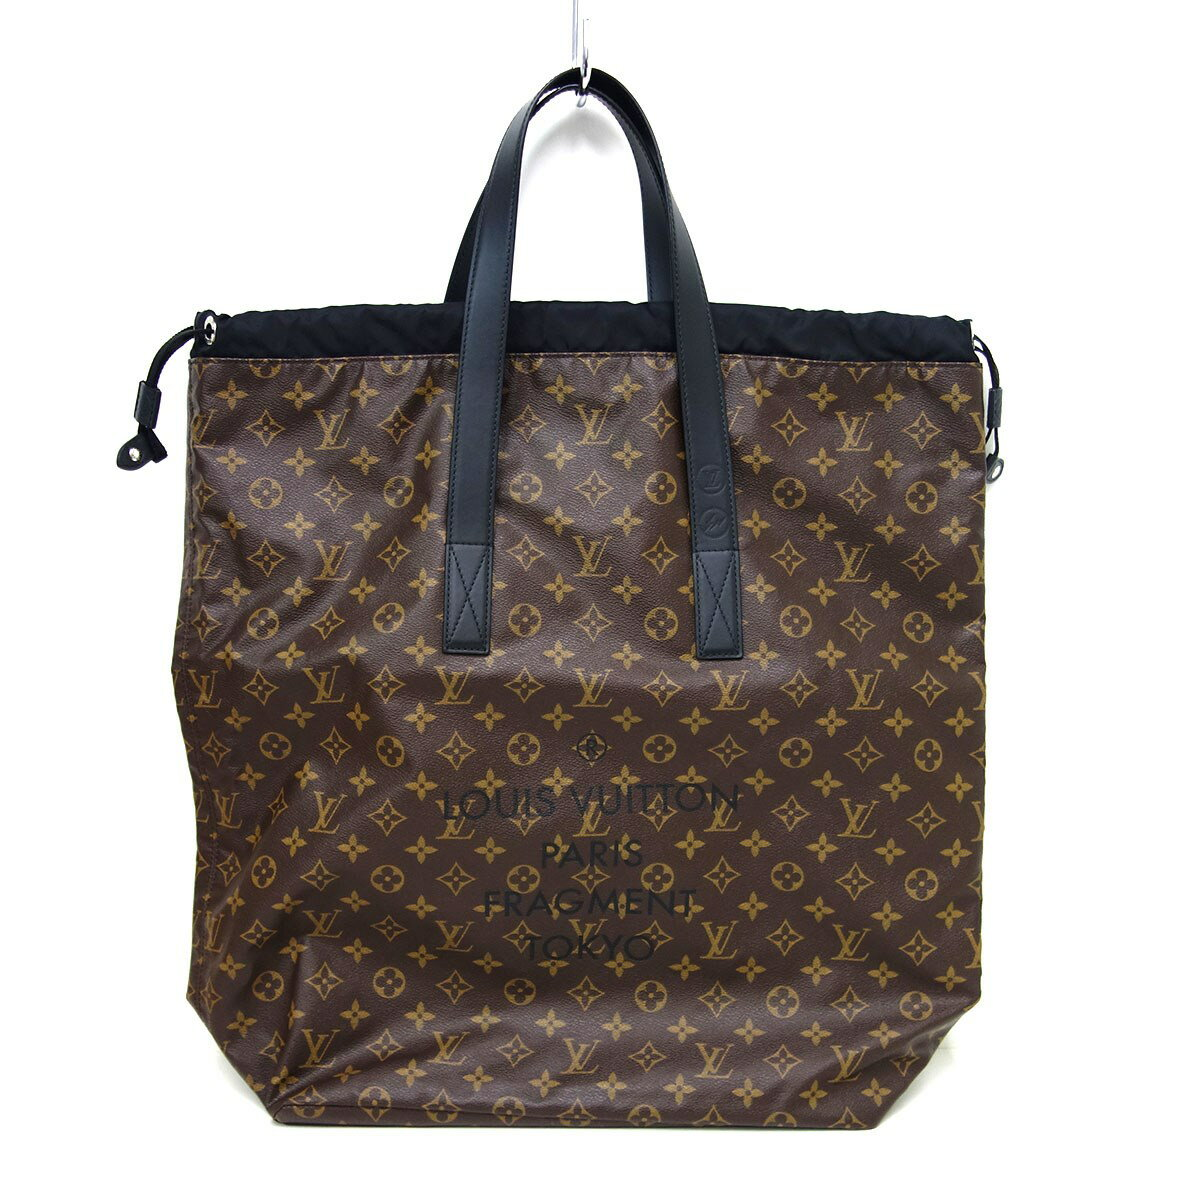 メンズバッグ, その他 LOUIS VUITTON fragment design 17SS M43416 - 241220